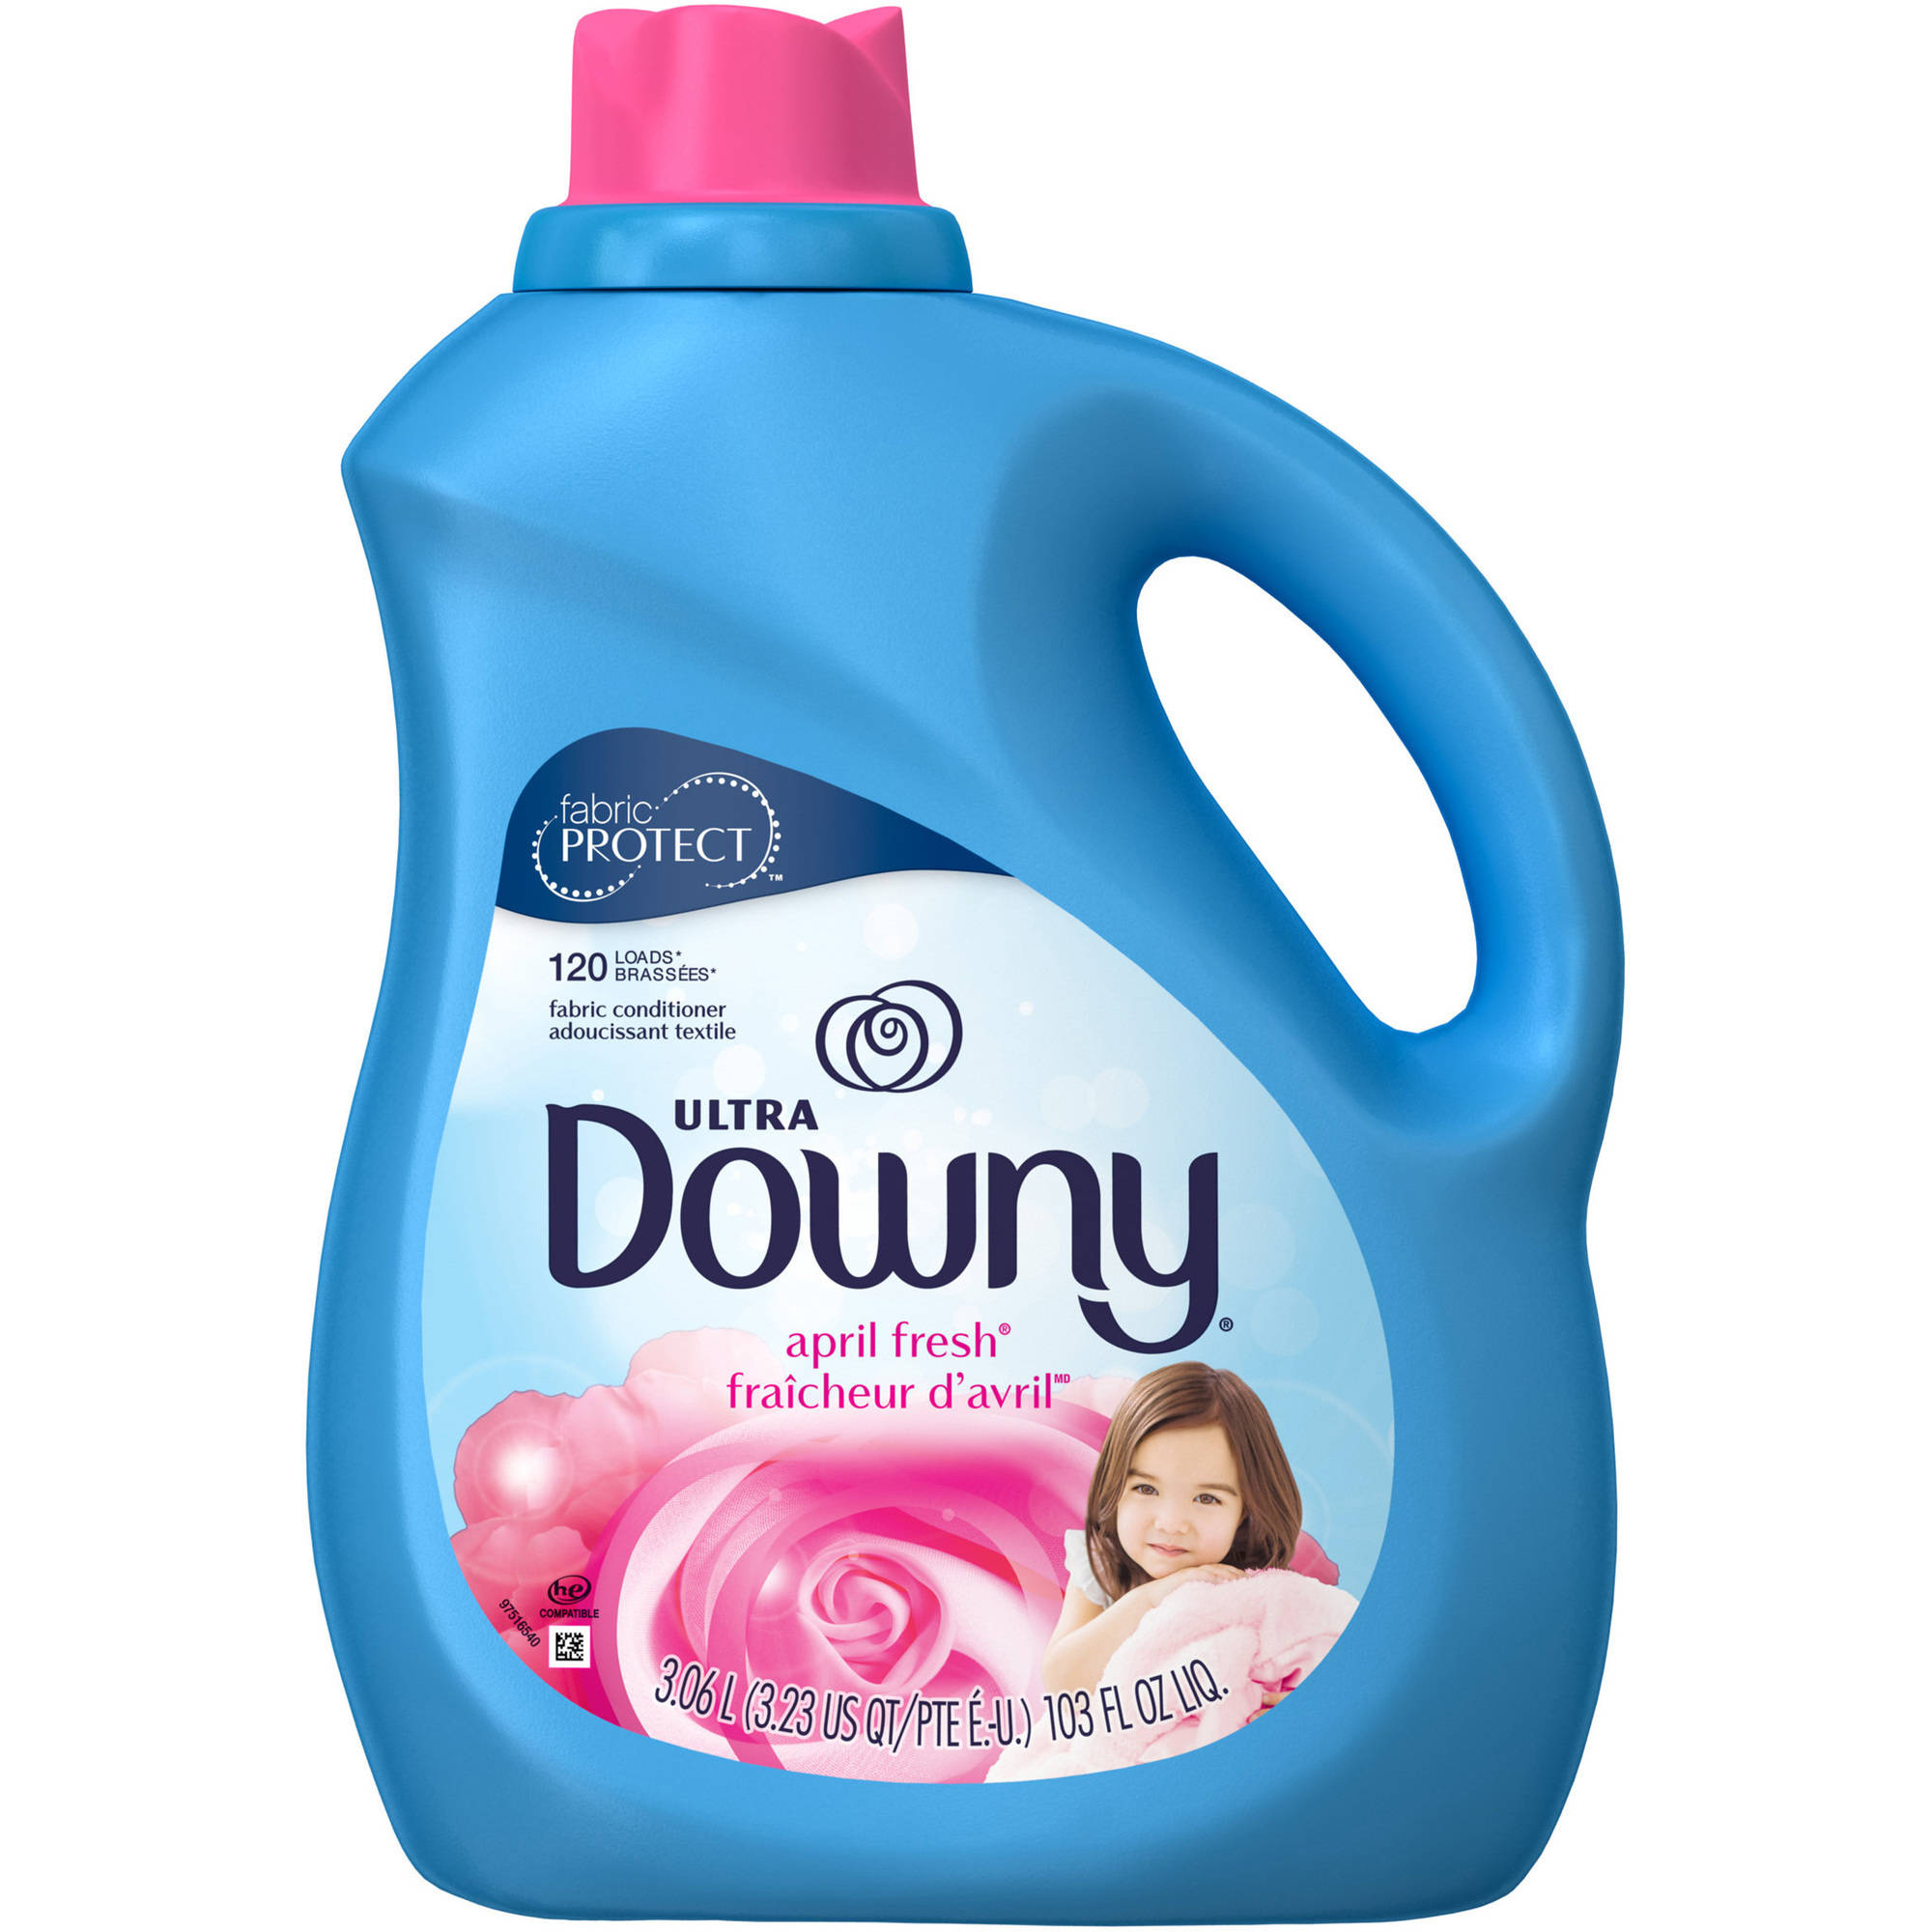 Ultra Downy Fabric Protect April Fresh Liquid Fabric Conditioner, 103 fl oz